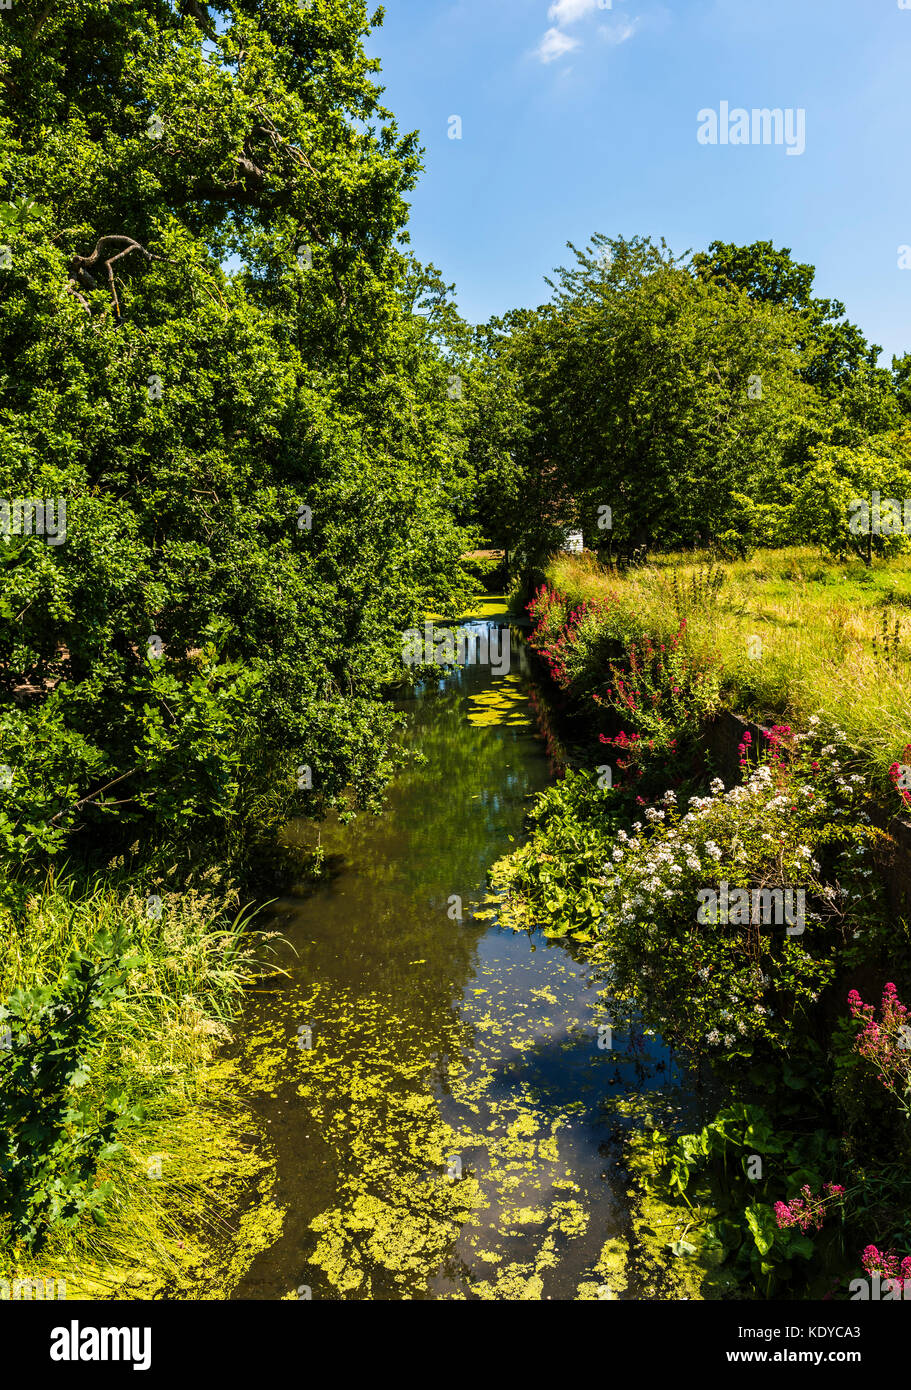 Tranquil stream at Sissinghurst Gardens, Kent, UK - Stock Image